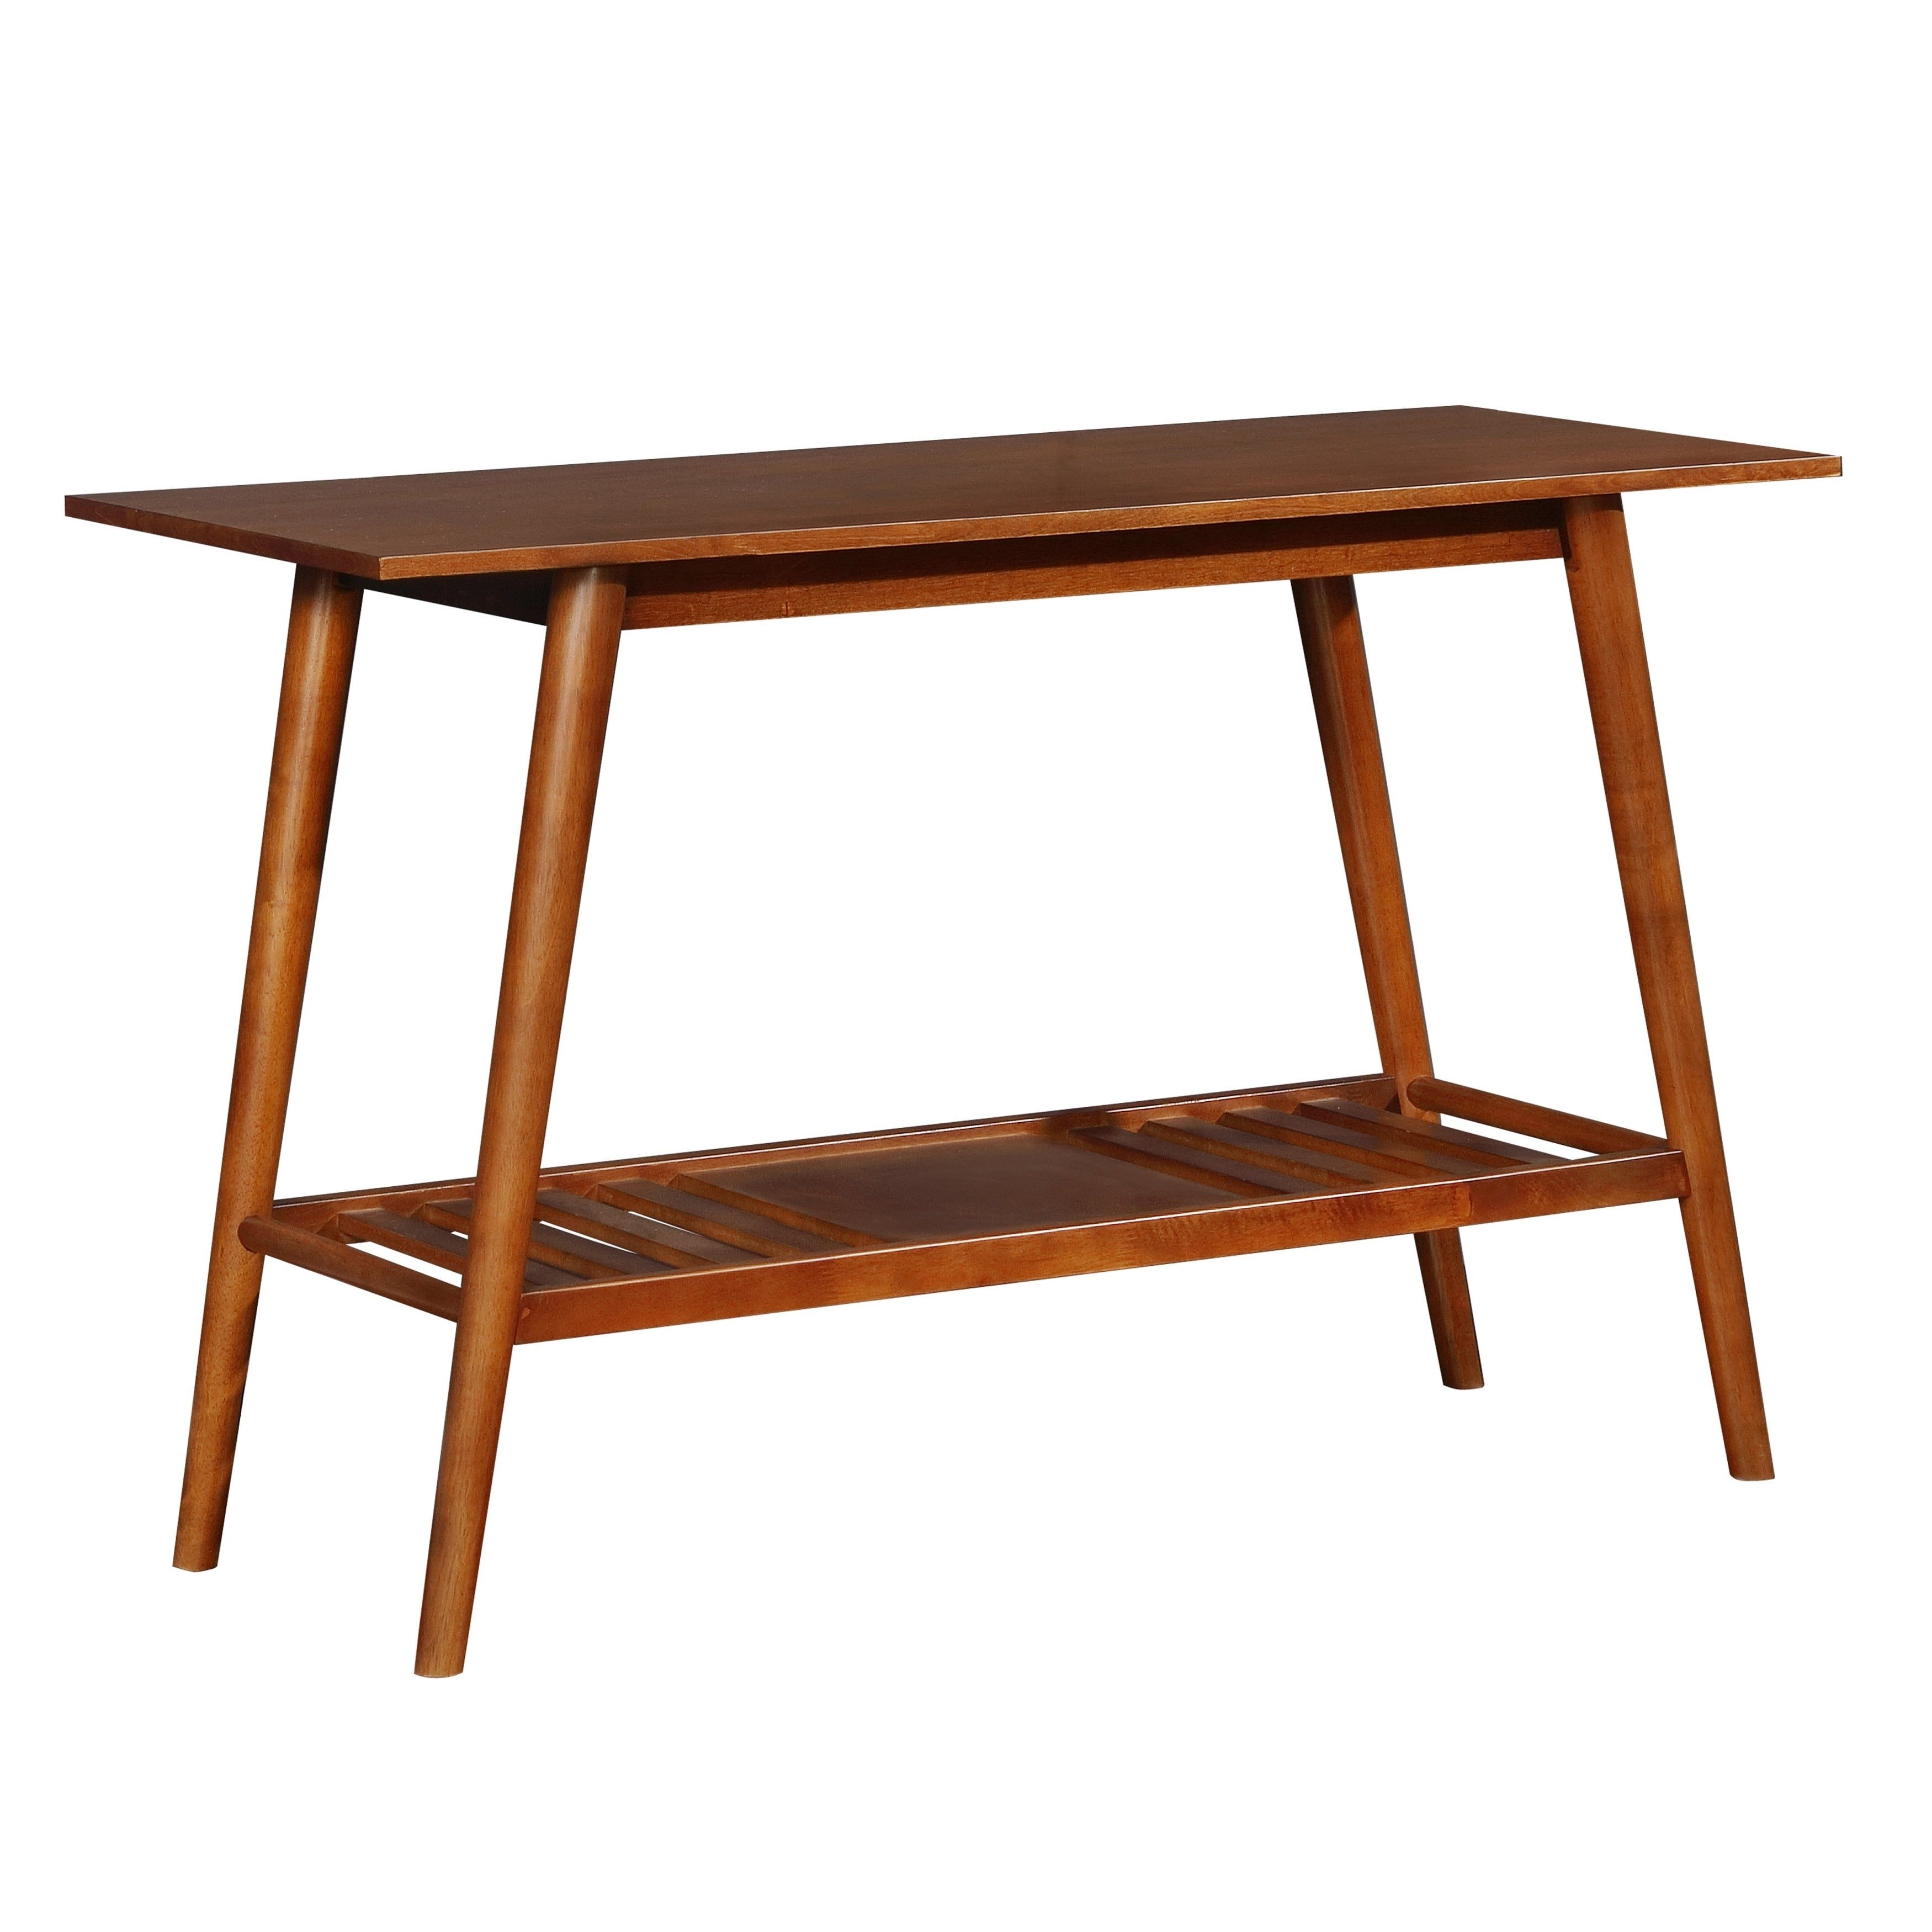 Wooden Console Table with Angled Legs and Open Shelf Storage, Brown